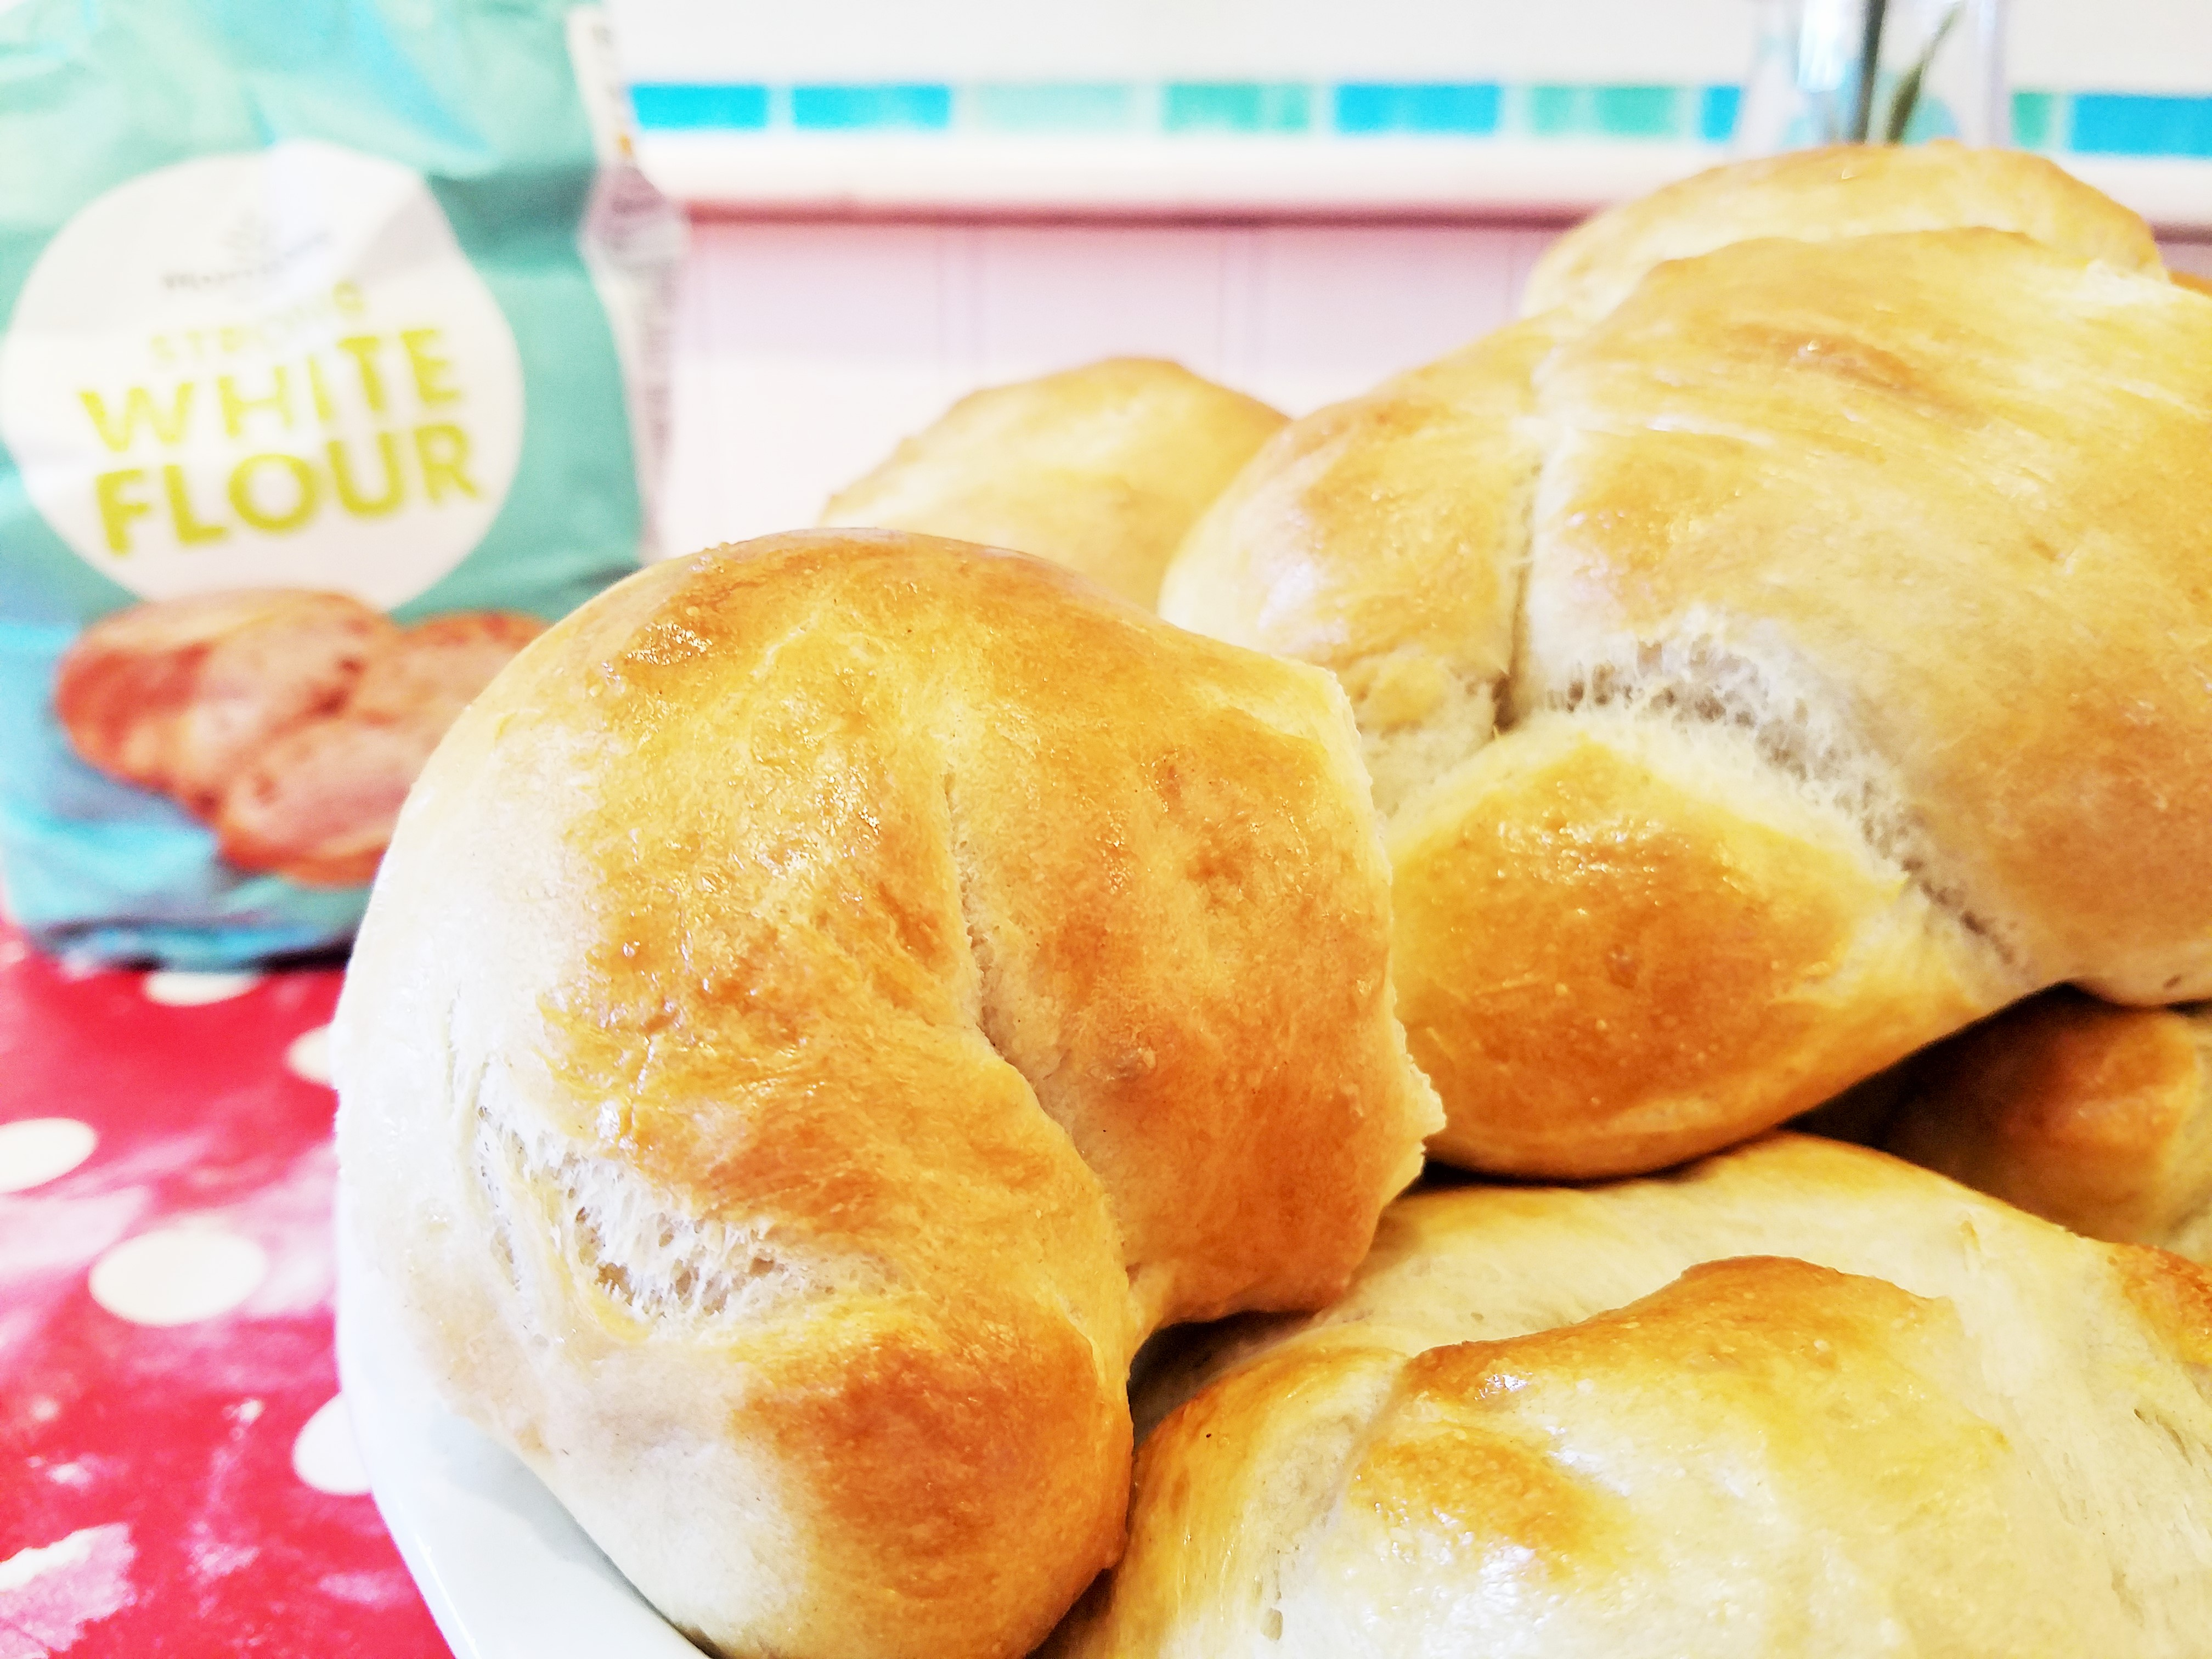 Bread maker bread rolls with strong white bread flour in the background